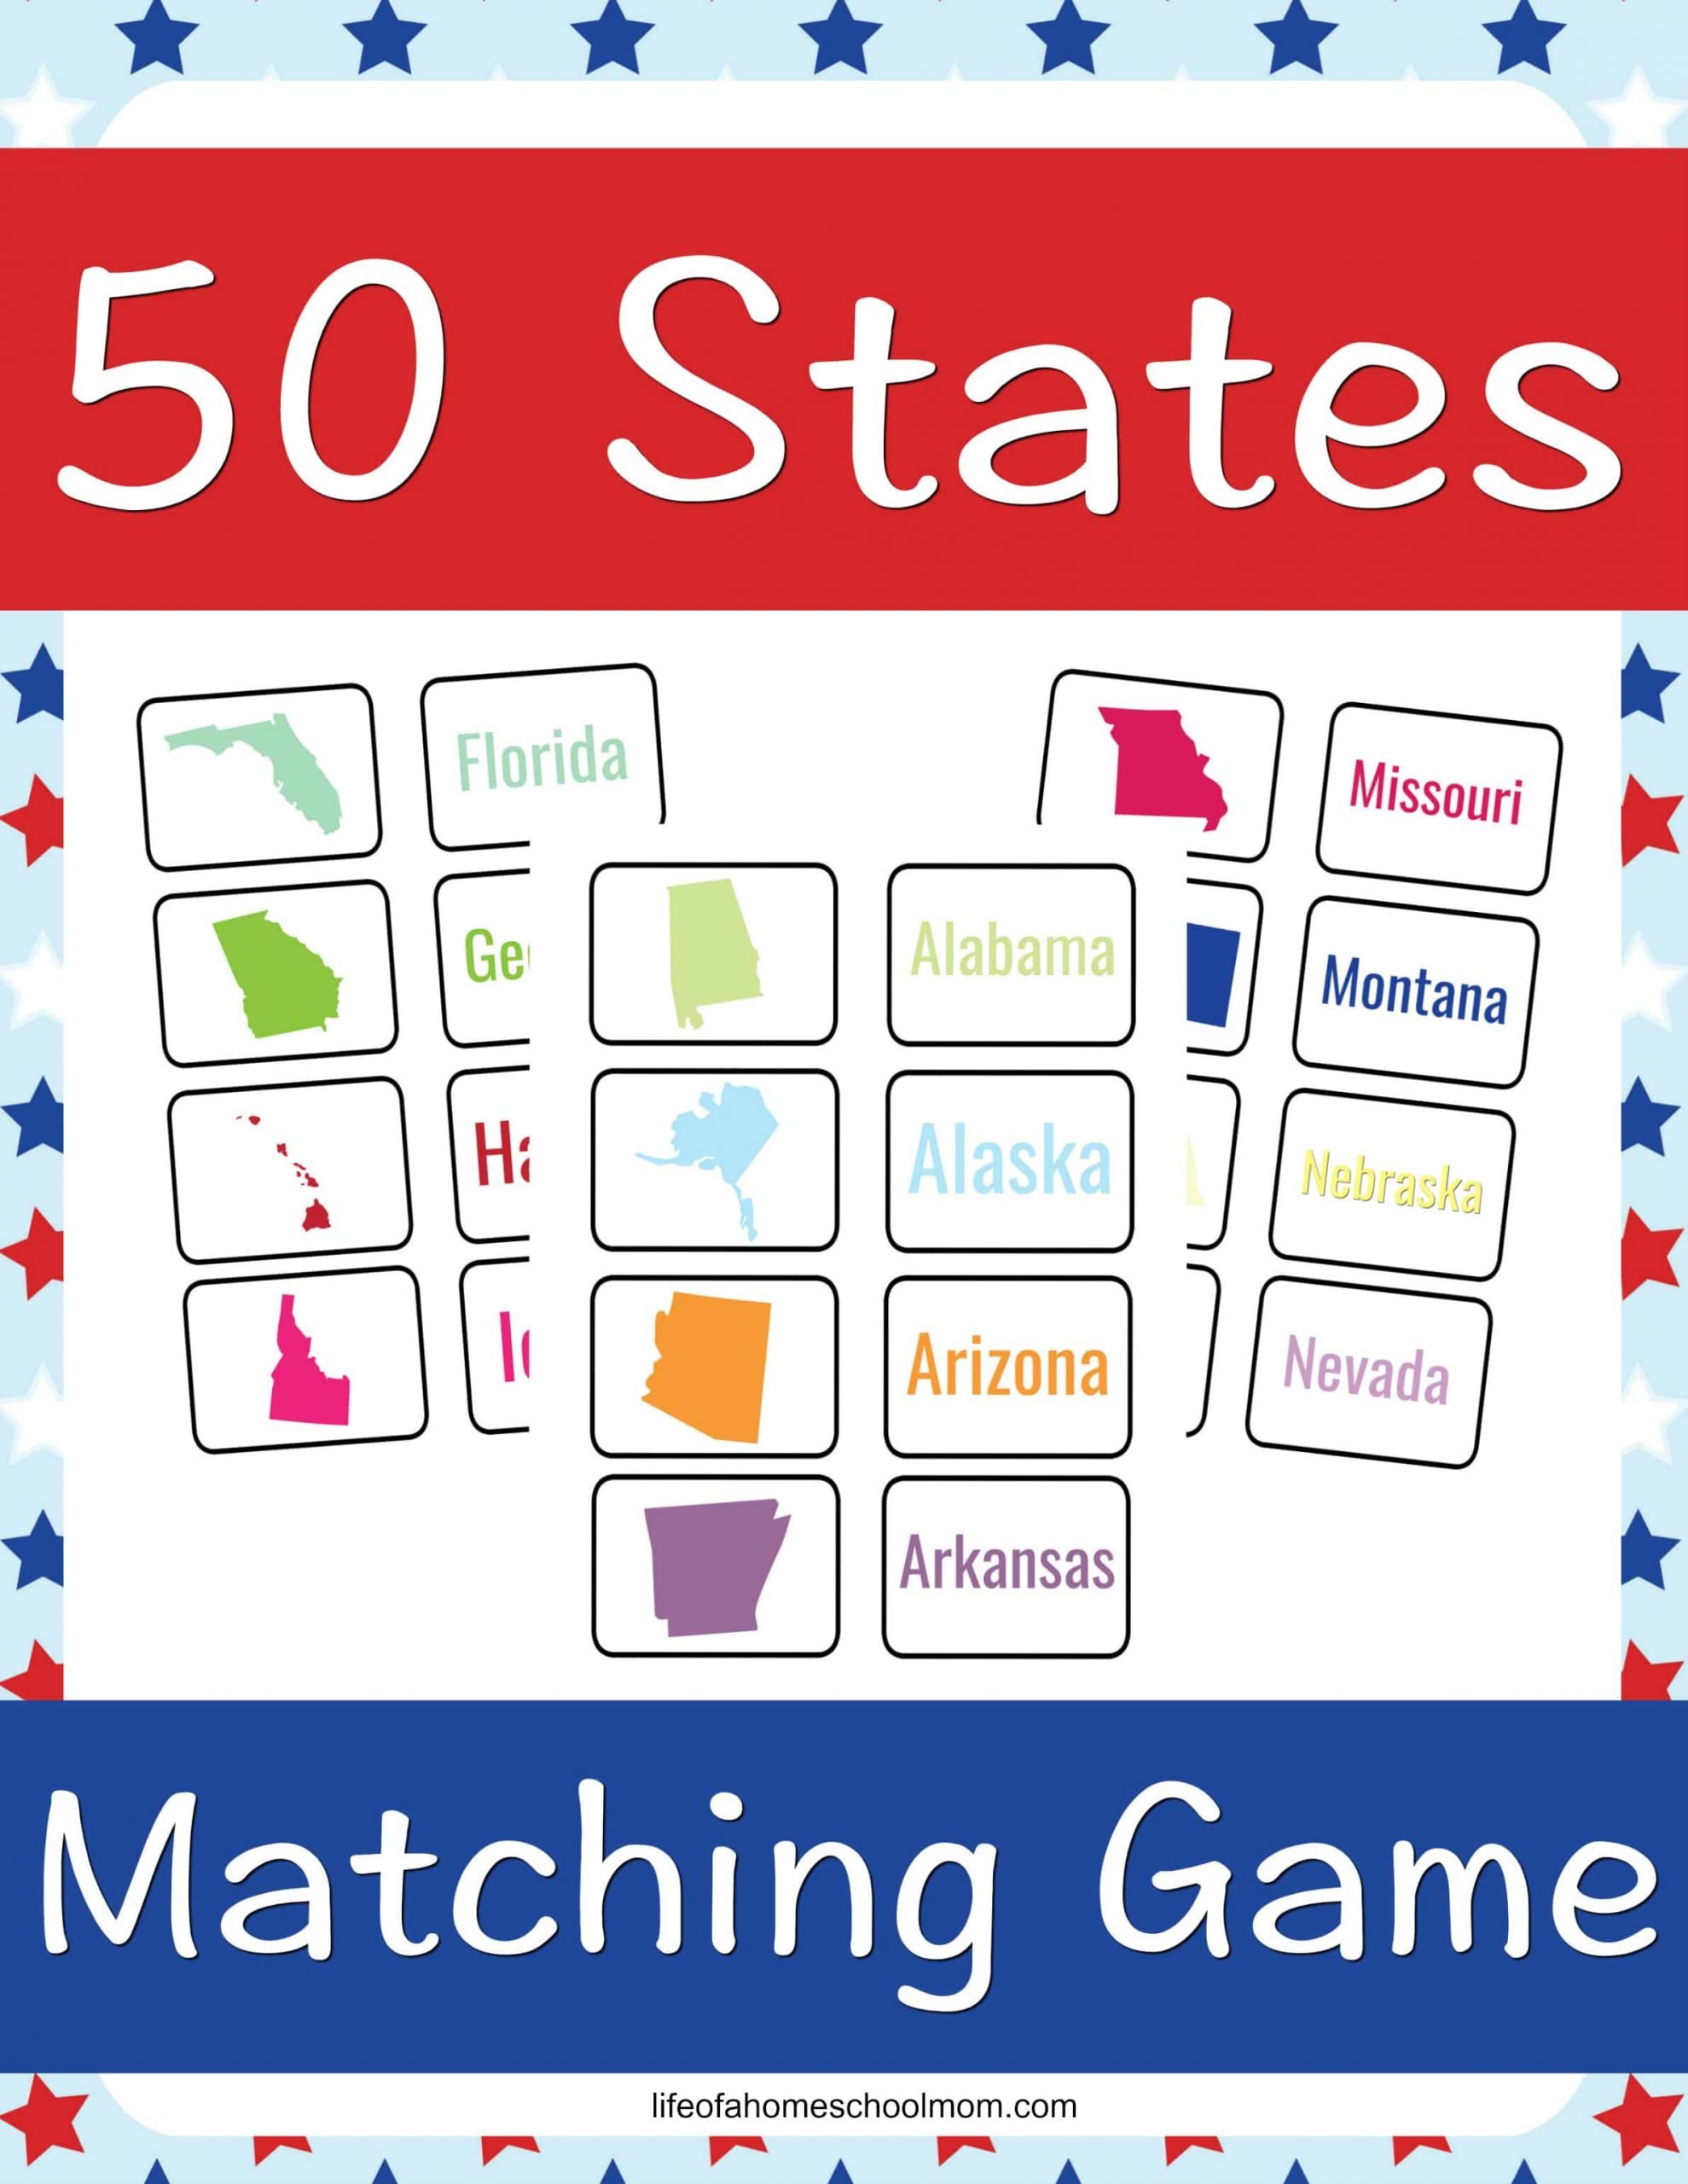 Teach your child all about the 50 states using this 50 States matching game printable!